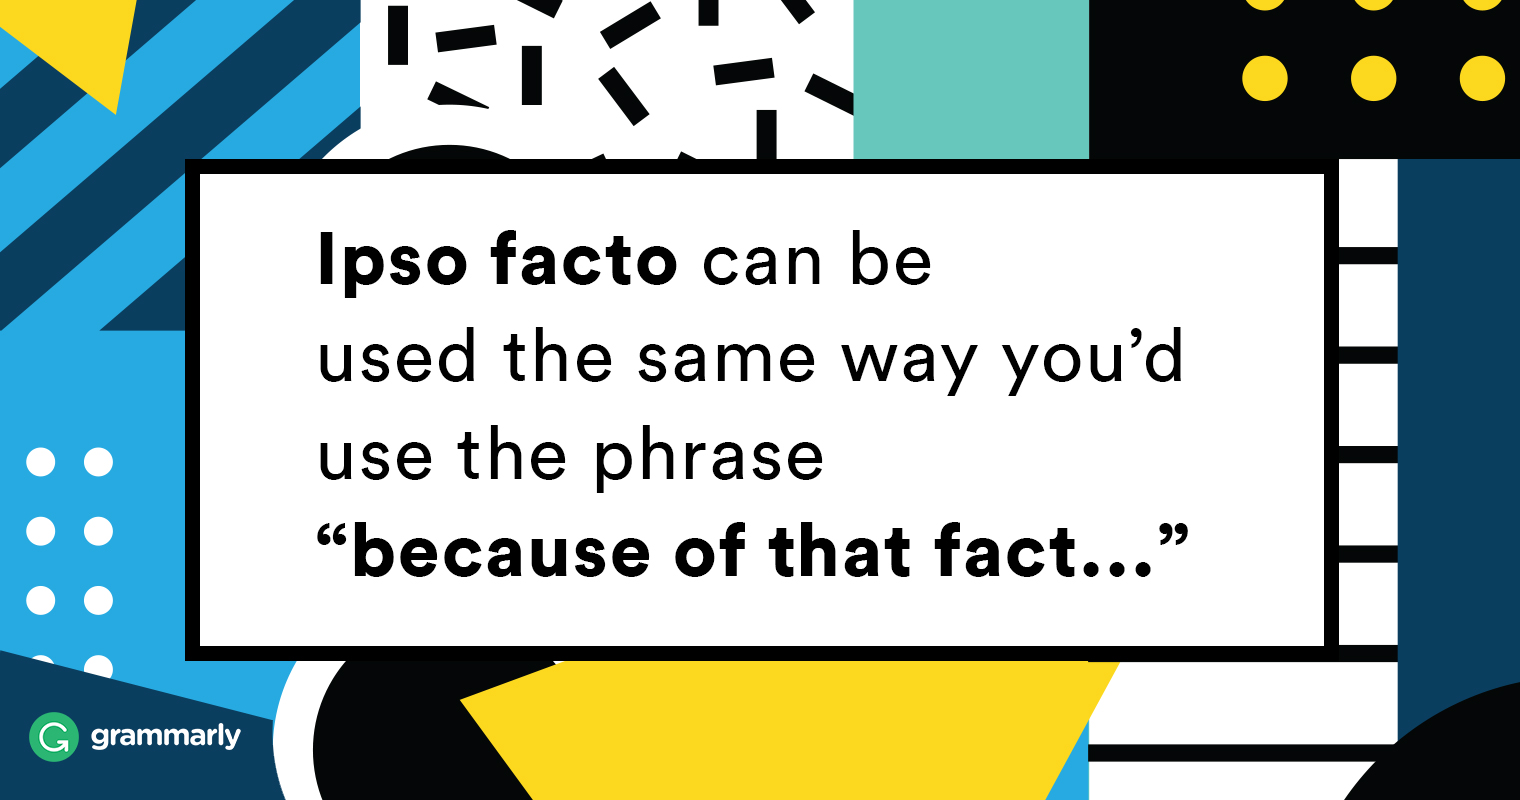 Ipso facto meaning